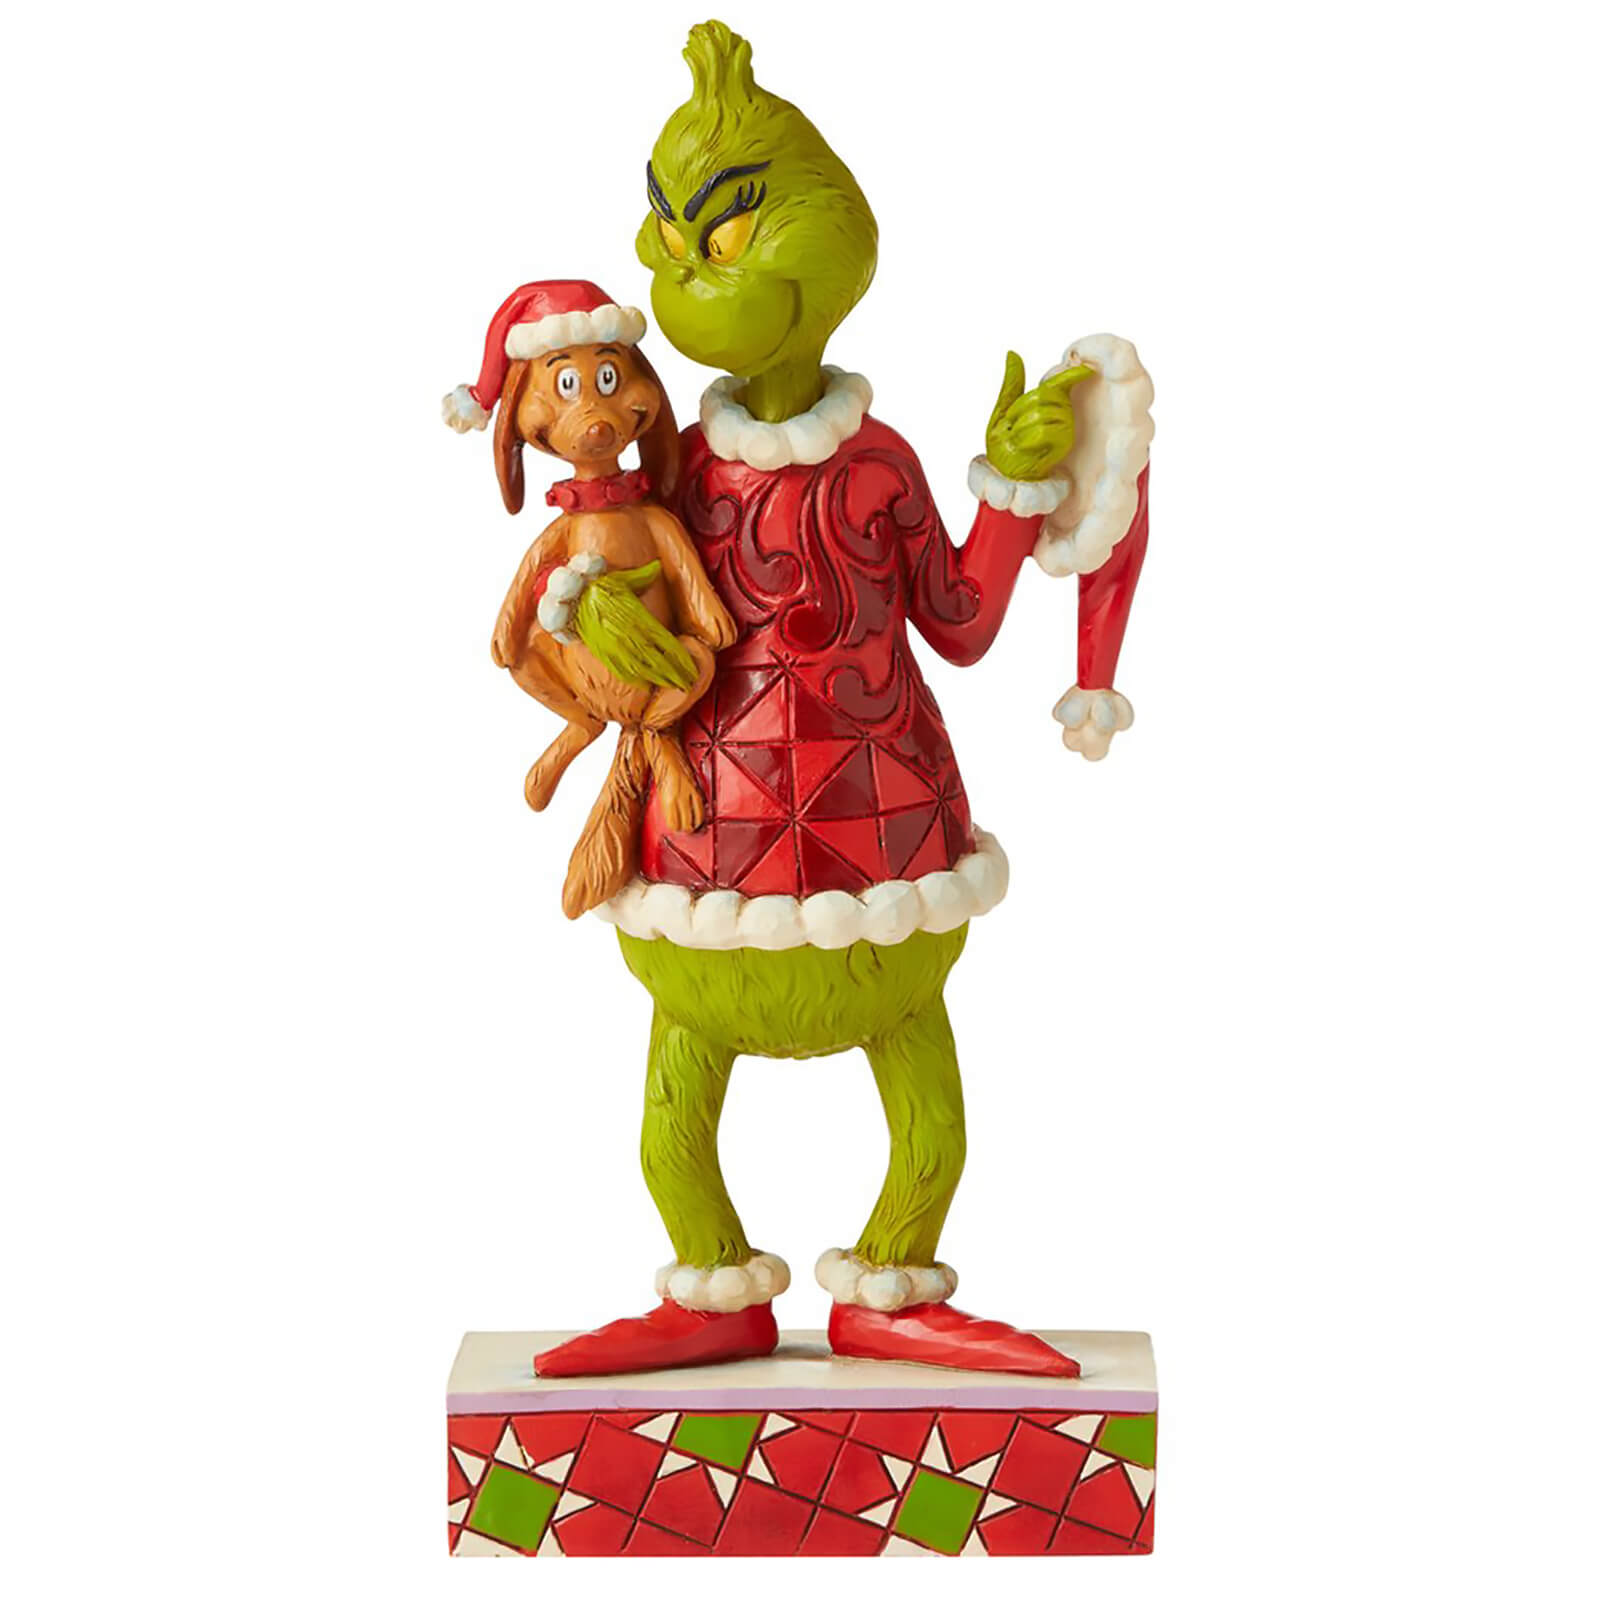 Image of The Grinch by Jim Shore Grinch with Max Under His Arm Figurine 19.5cm